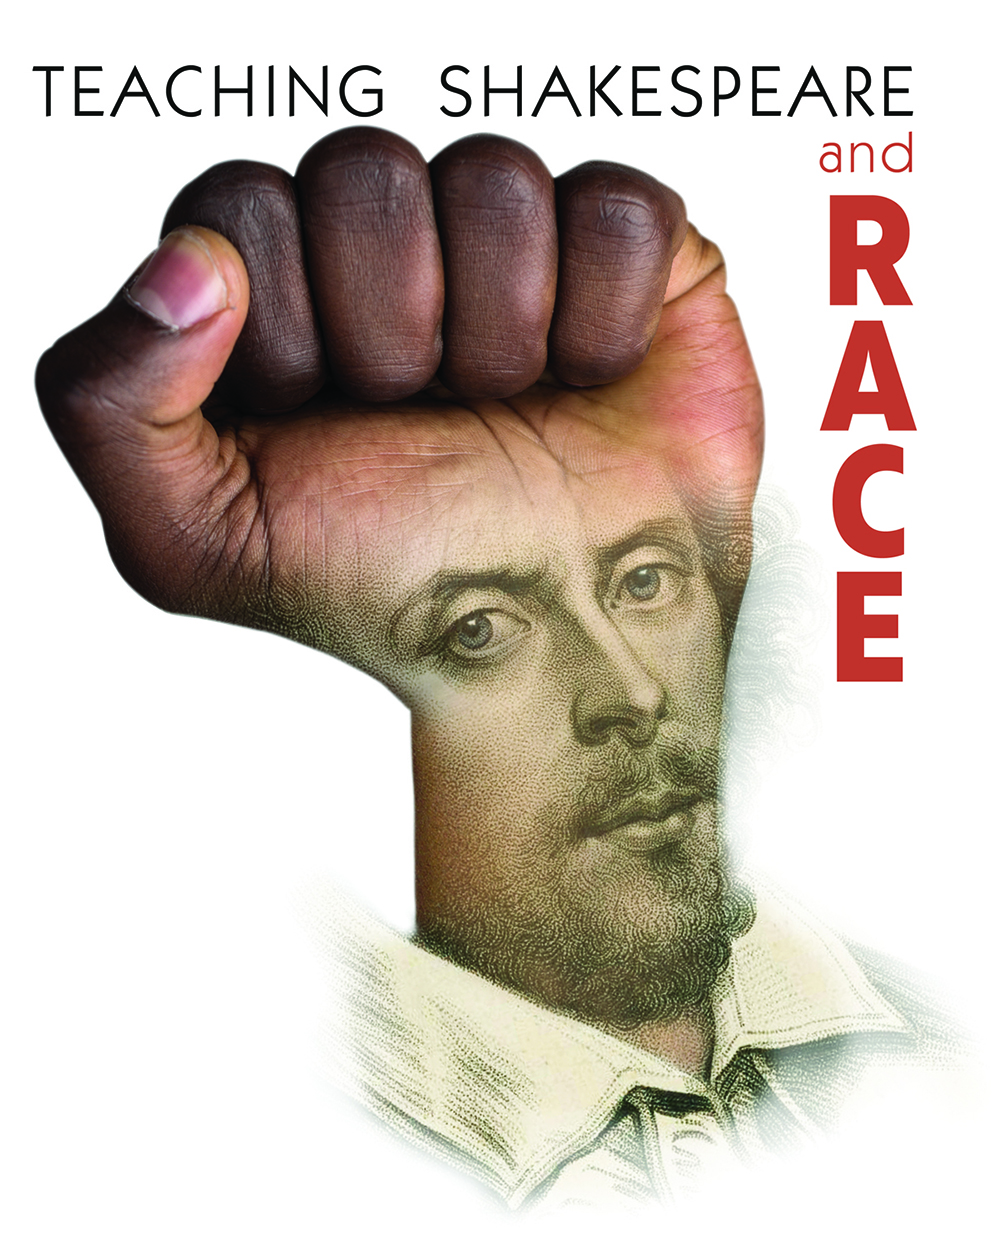 Text: Teaching Shakespeare and Race, image of Shakespeare's face over a fist